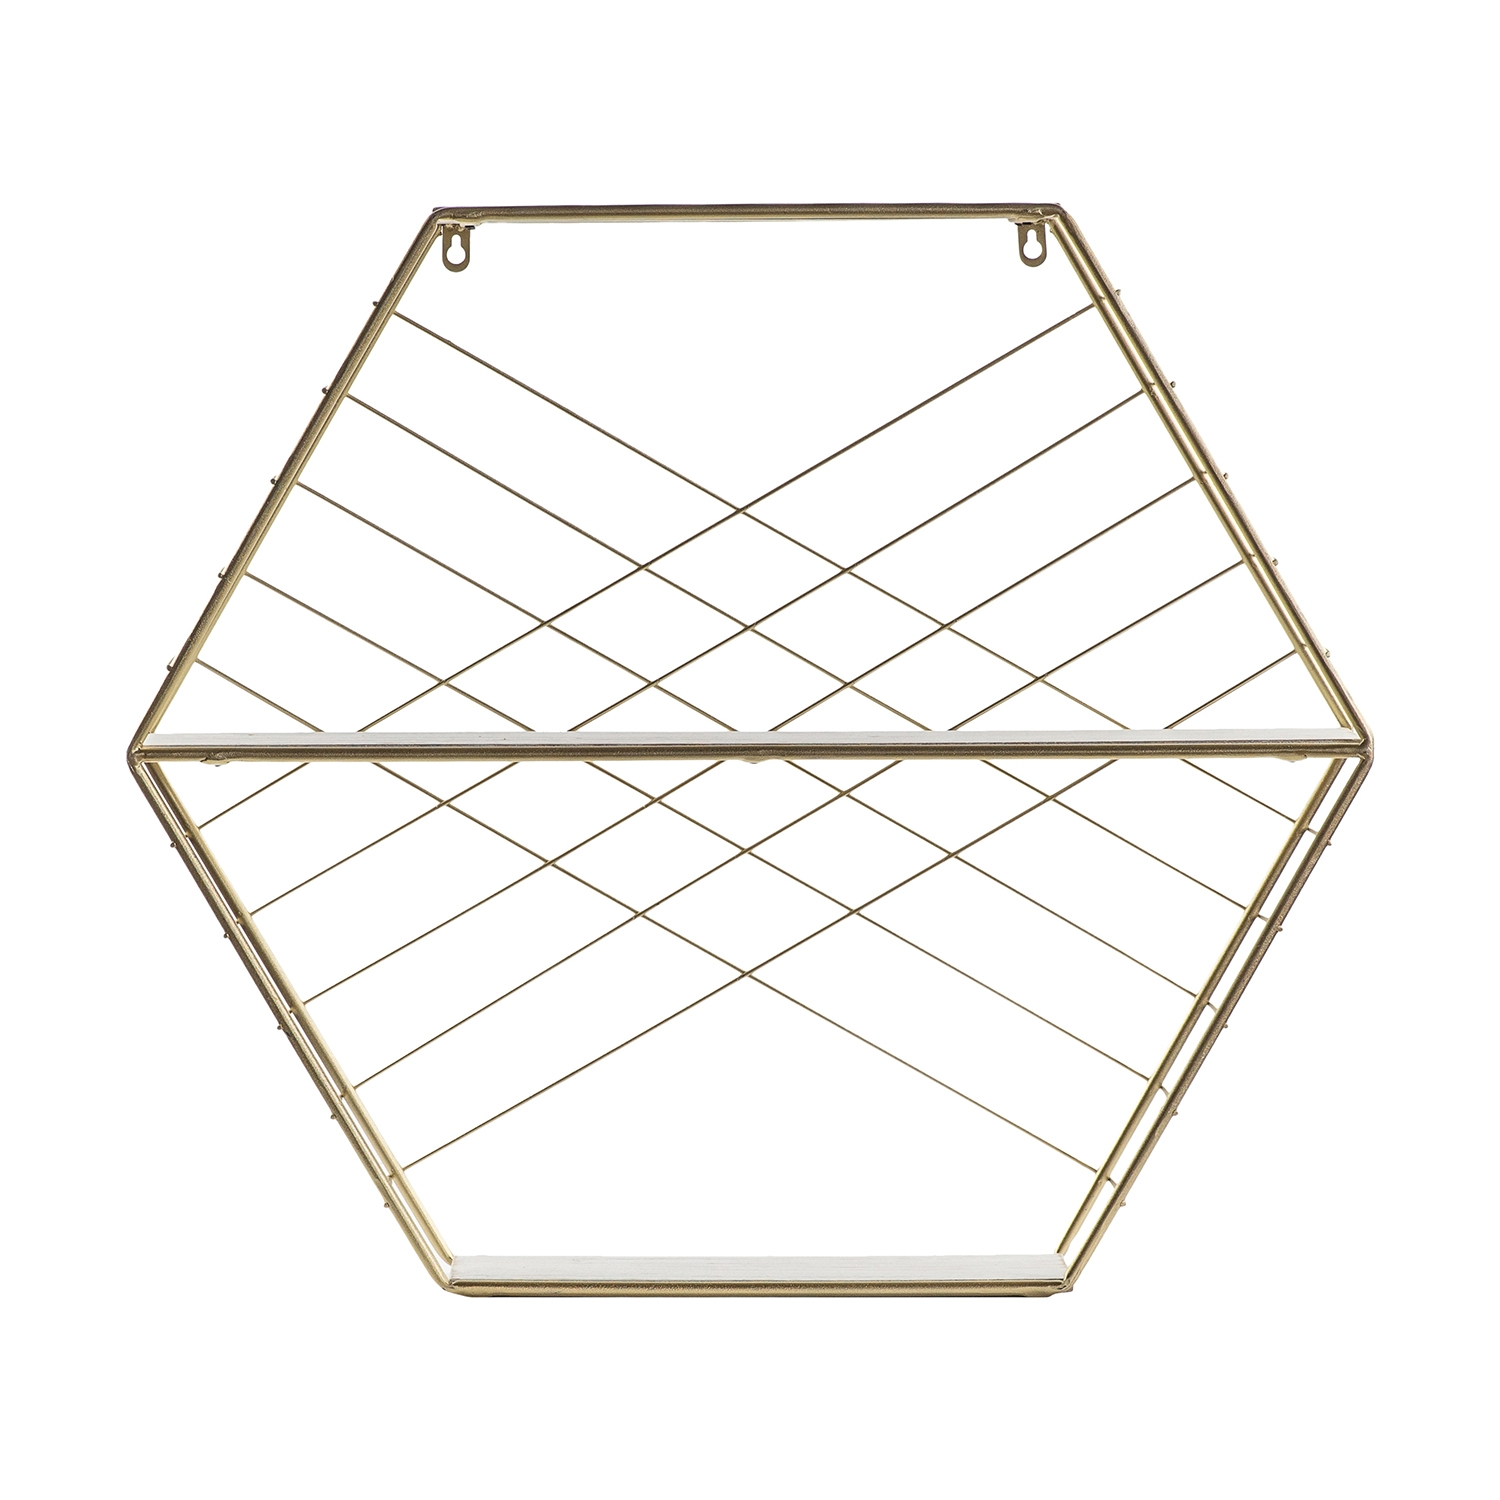 Image of Gallery Alton Shelving Unit, Gold